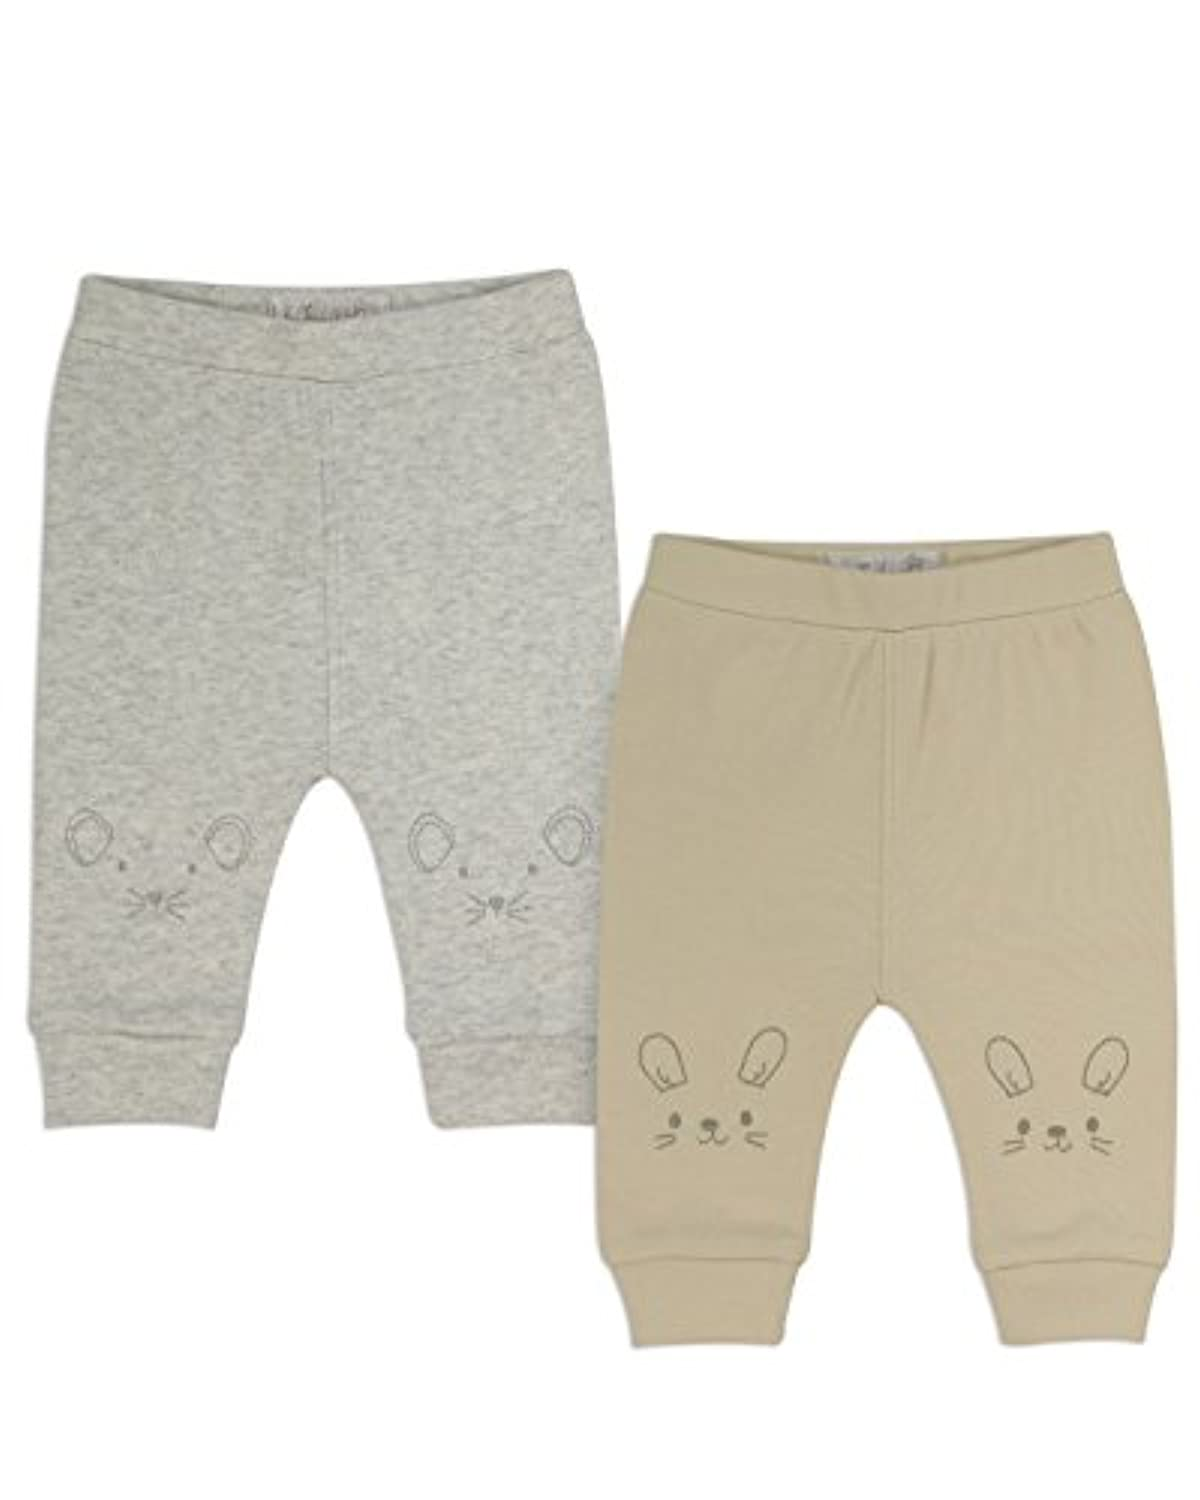 The Essential One PANTS ベビー?ボーイズ